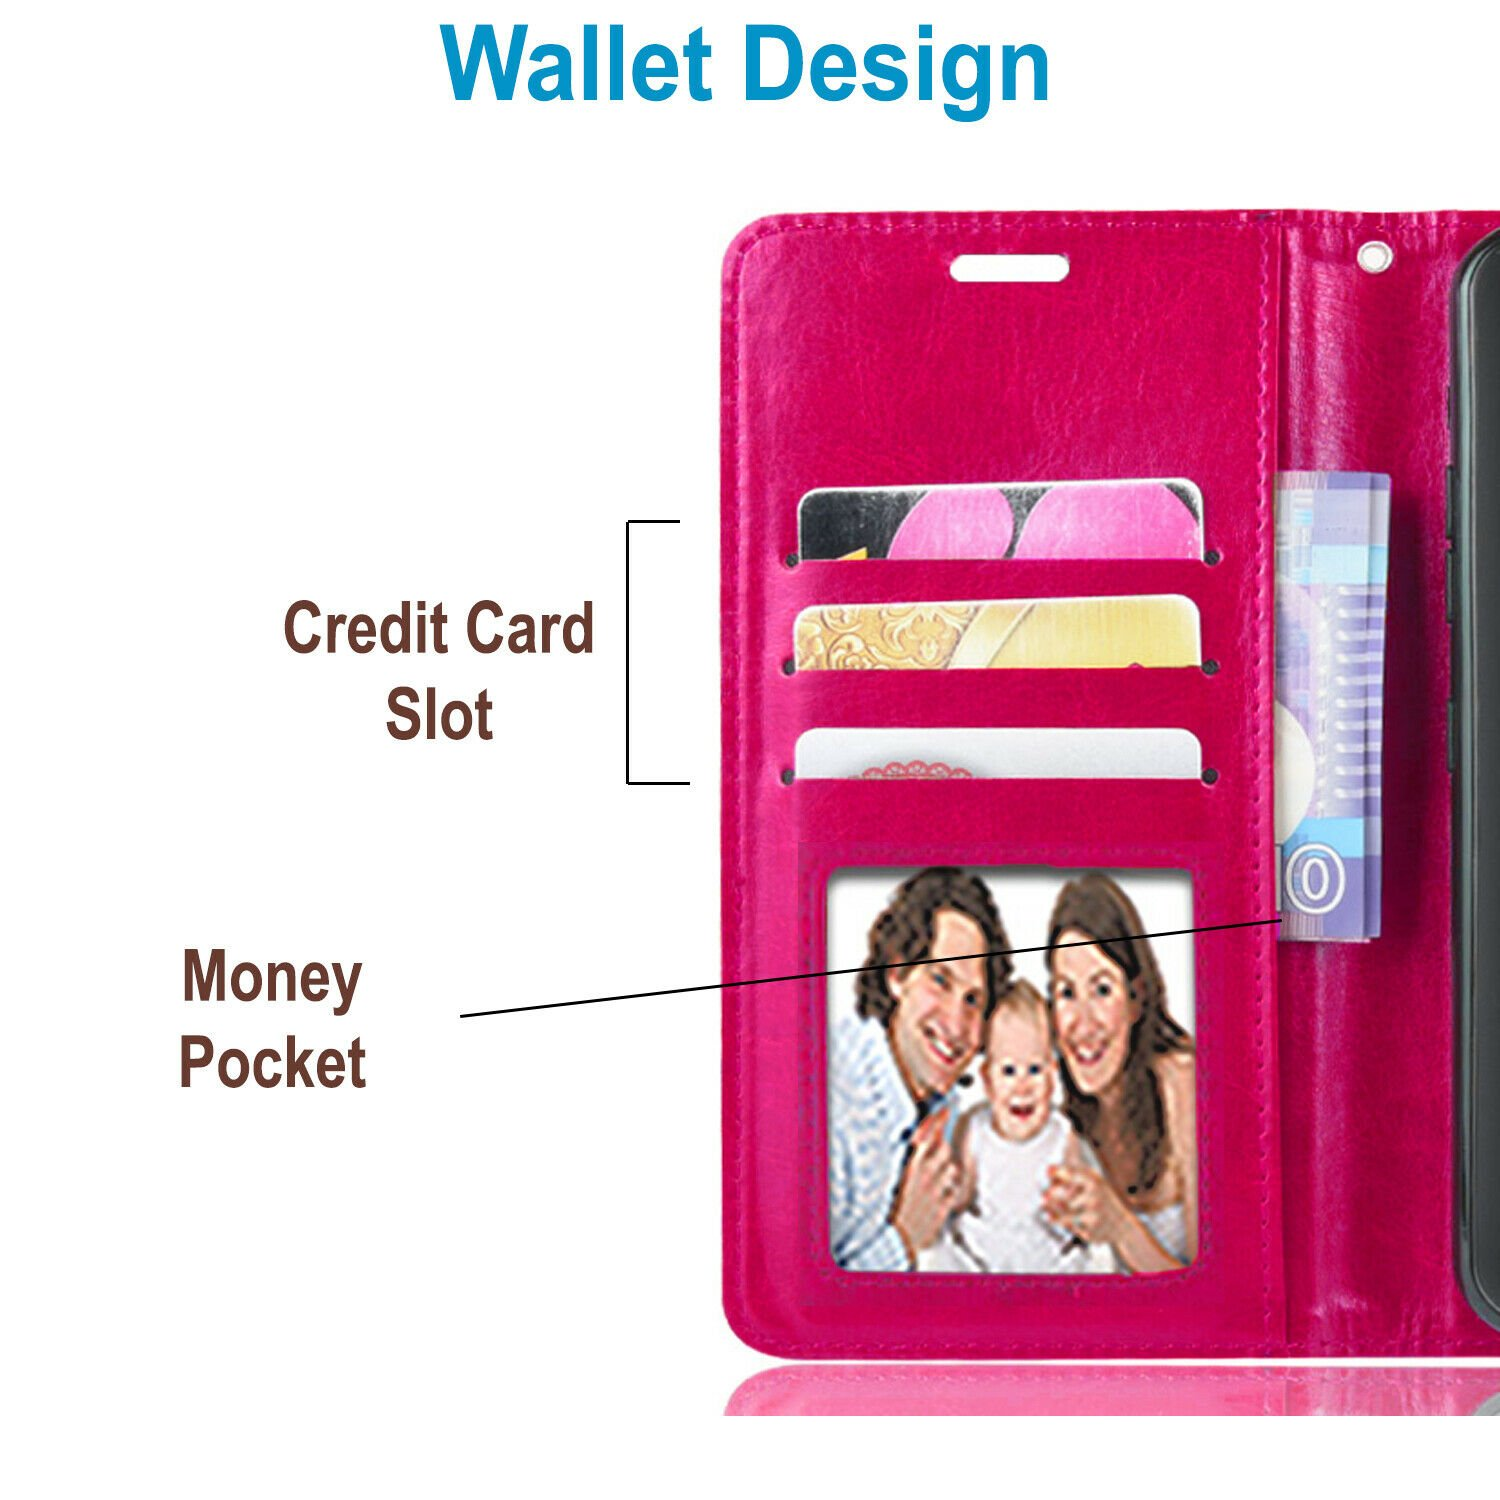 thumbnail 24 - For iPhone 7 / 8 / 7 Plus Case, Premium Wallet Cover + Tempered Glass Protector